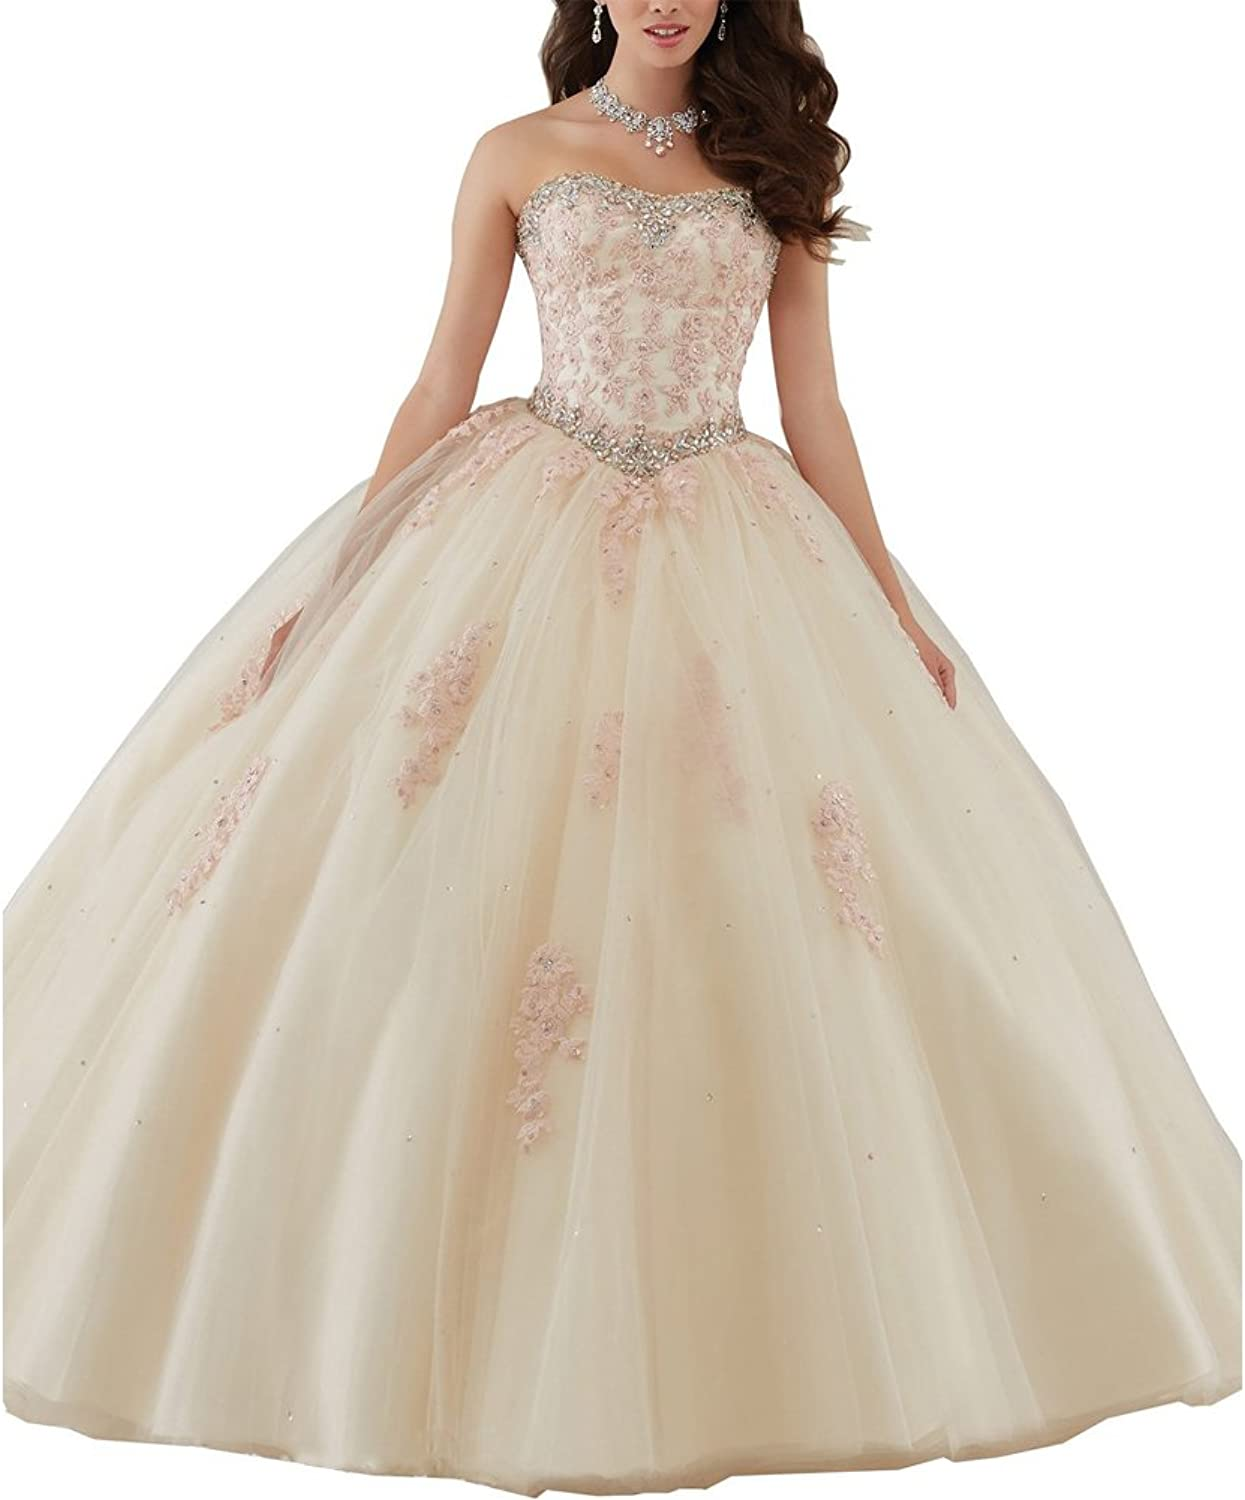 Beauty Bridal Women's Lace Applique Floor Length Tulle Ball Gown Quinceanera Dress